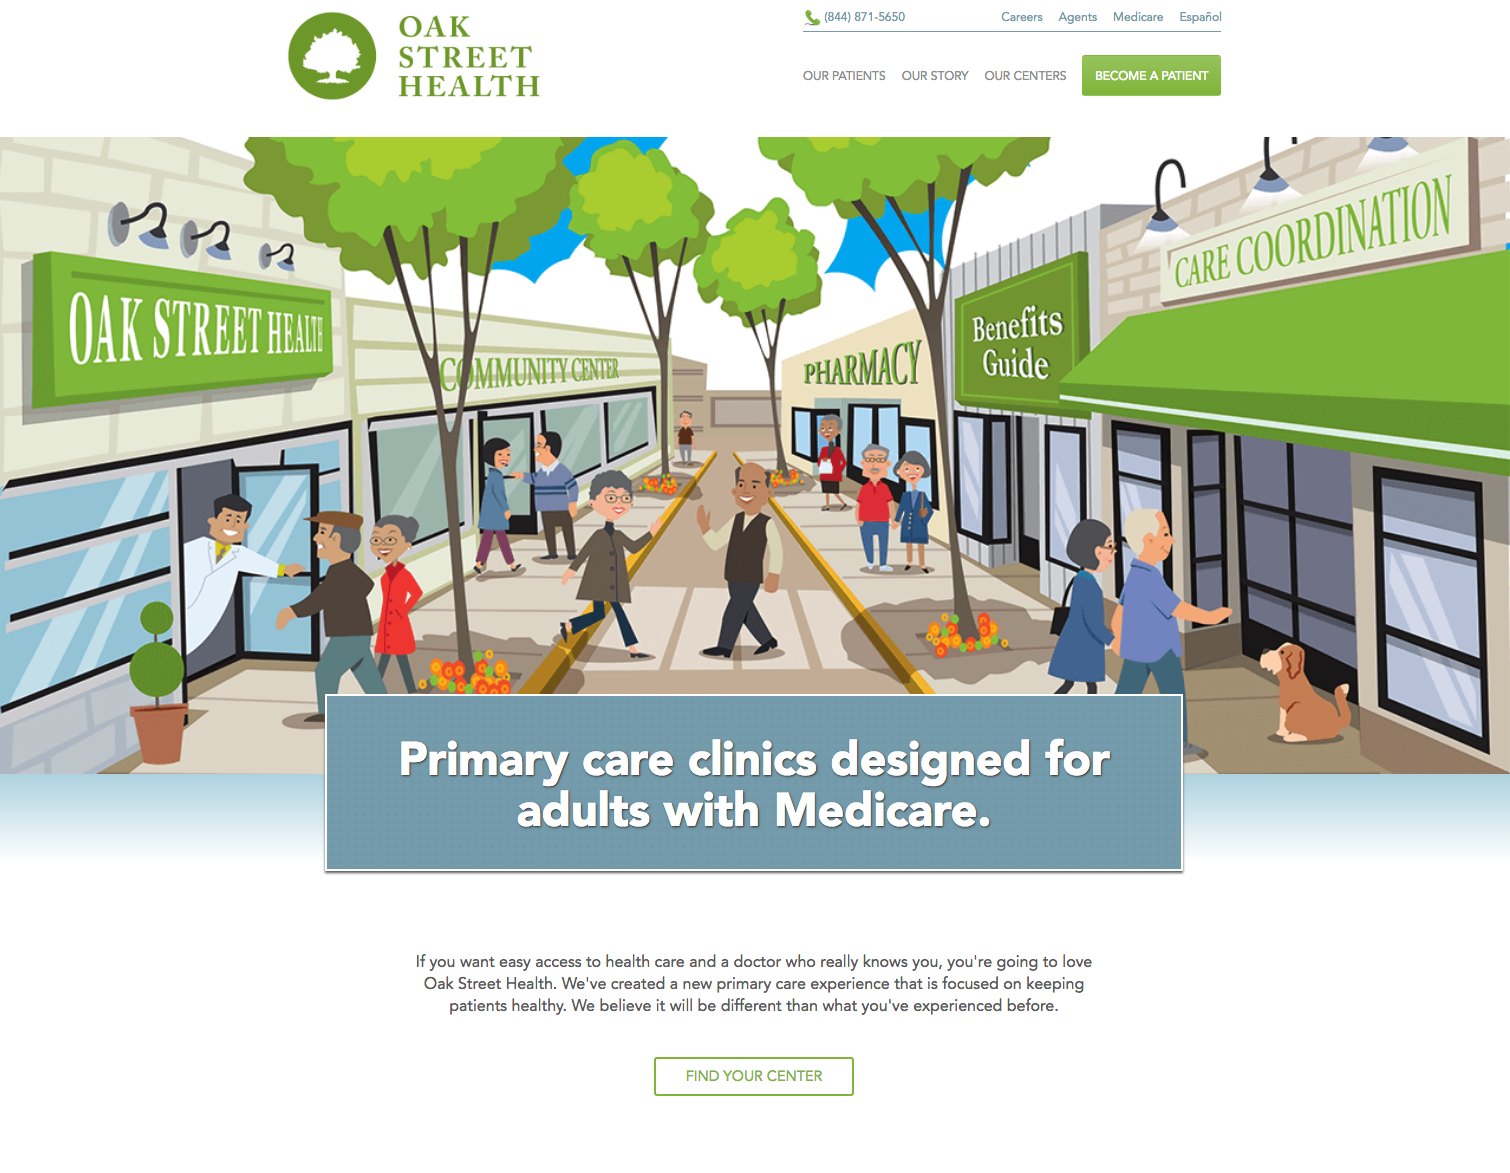 Previous Oak Street Health website. They wanted a more professional and streamlined experience to attract new patients and employees.